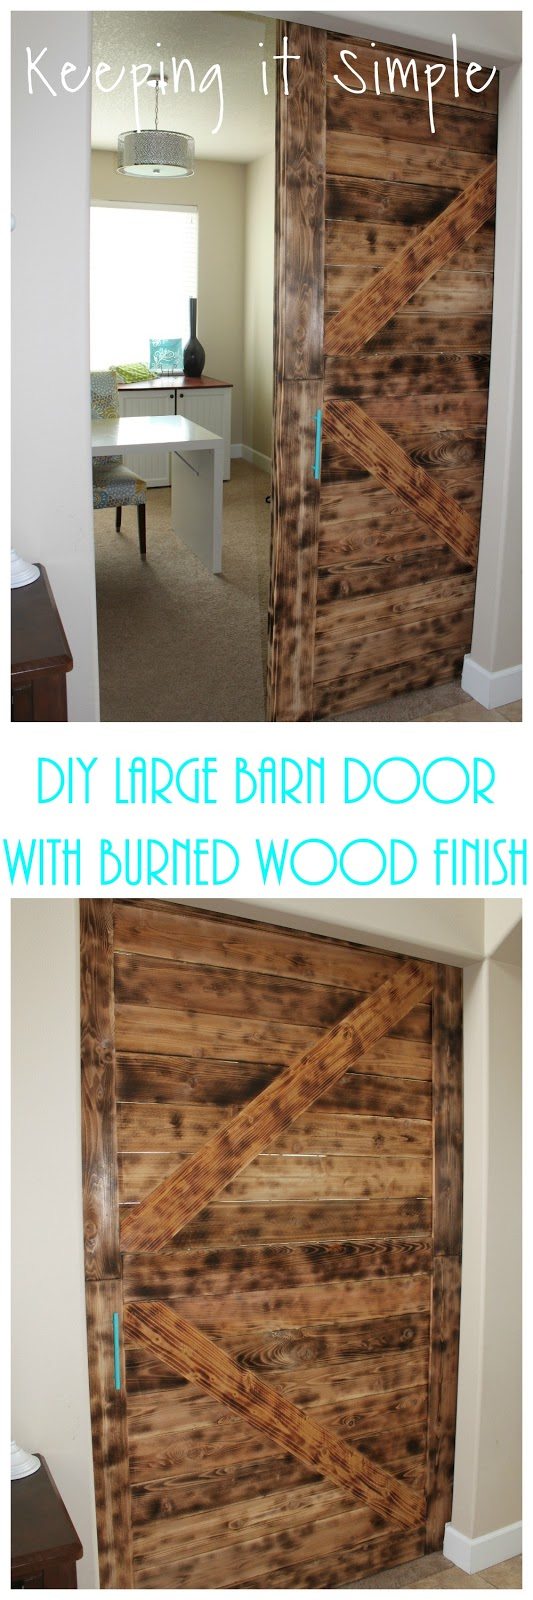 DIY Barn Door with Burned Wood Finish Perfect for Large Openings ...